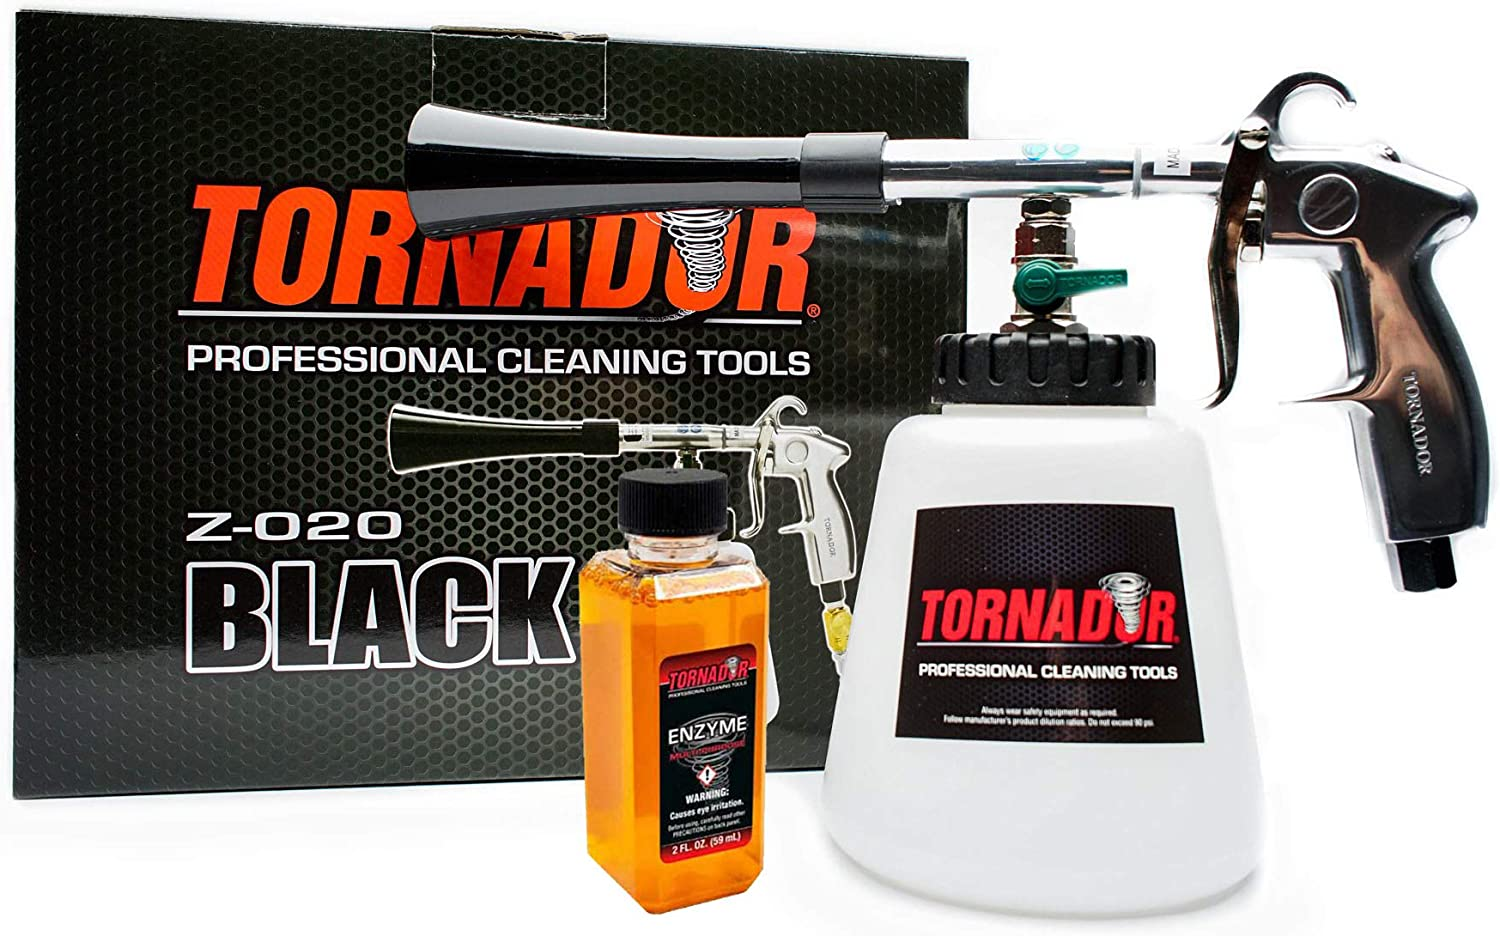 Tornador Z-020 New Orleans Mall Black Professional Cleaning Kit with Starter Gun Max 42% OFF